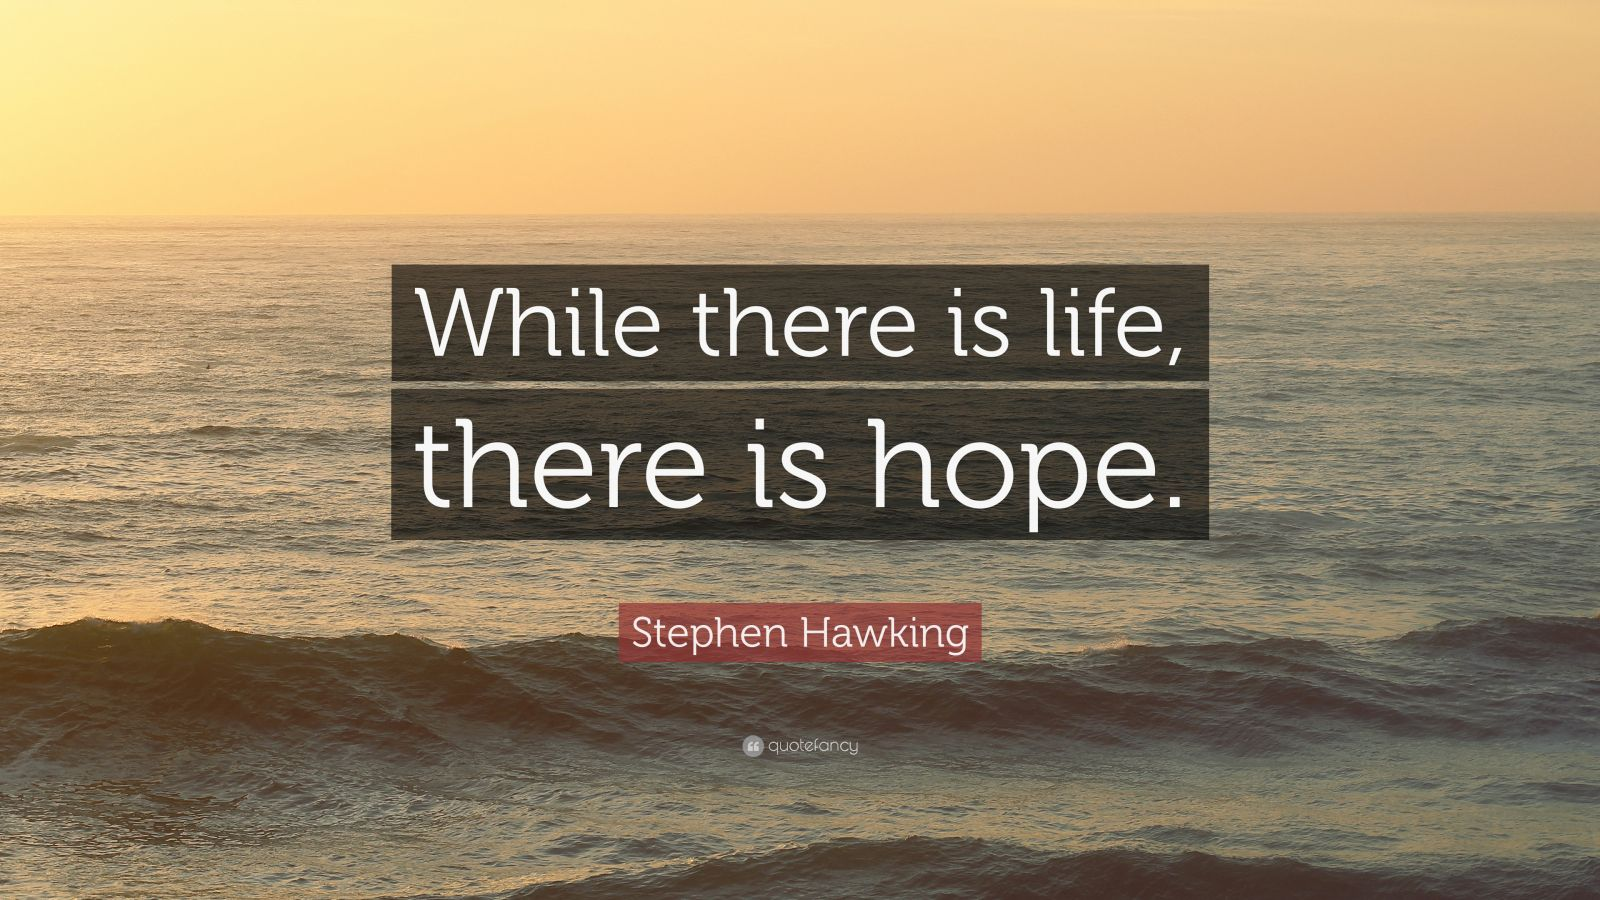 Benjamin Franklin Quotes Wallpaper Stephen Hawking Quote While There Is Life There Is Hope